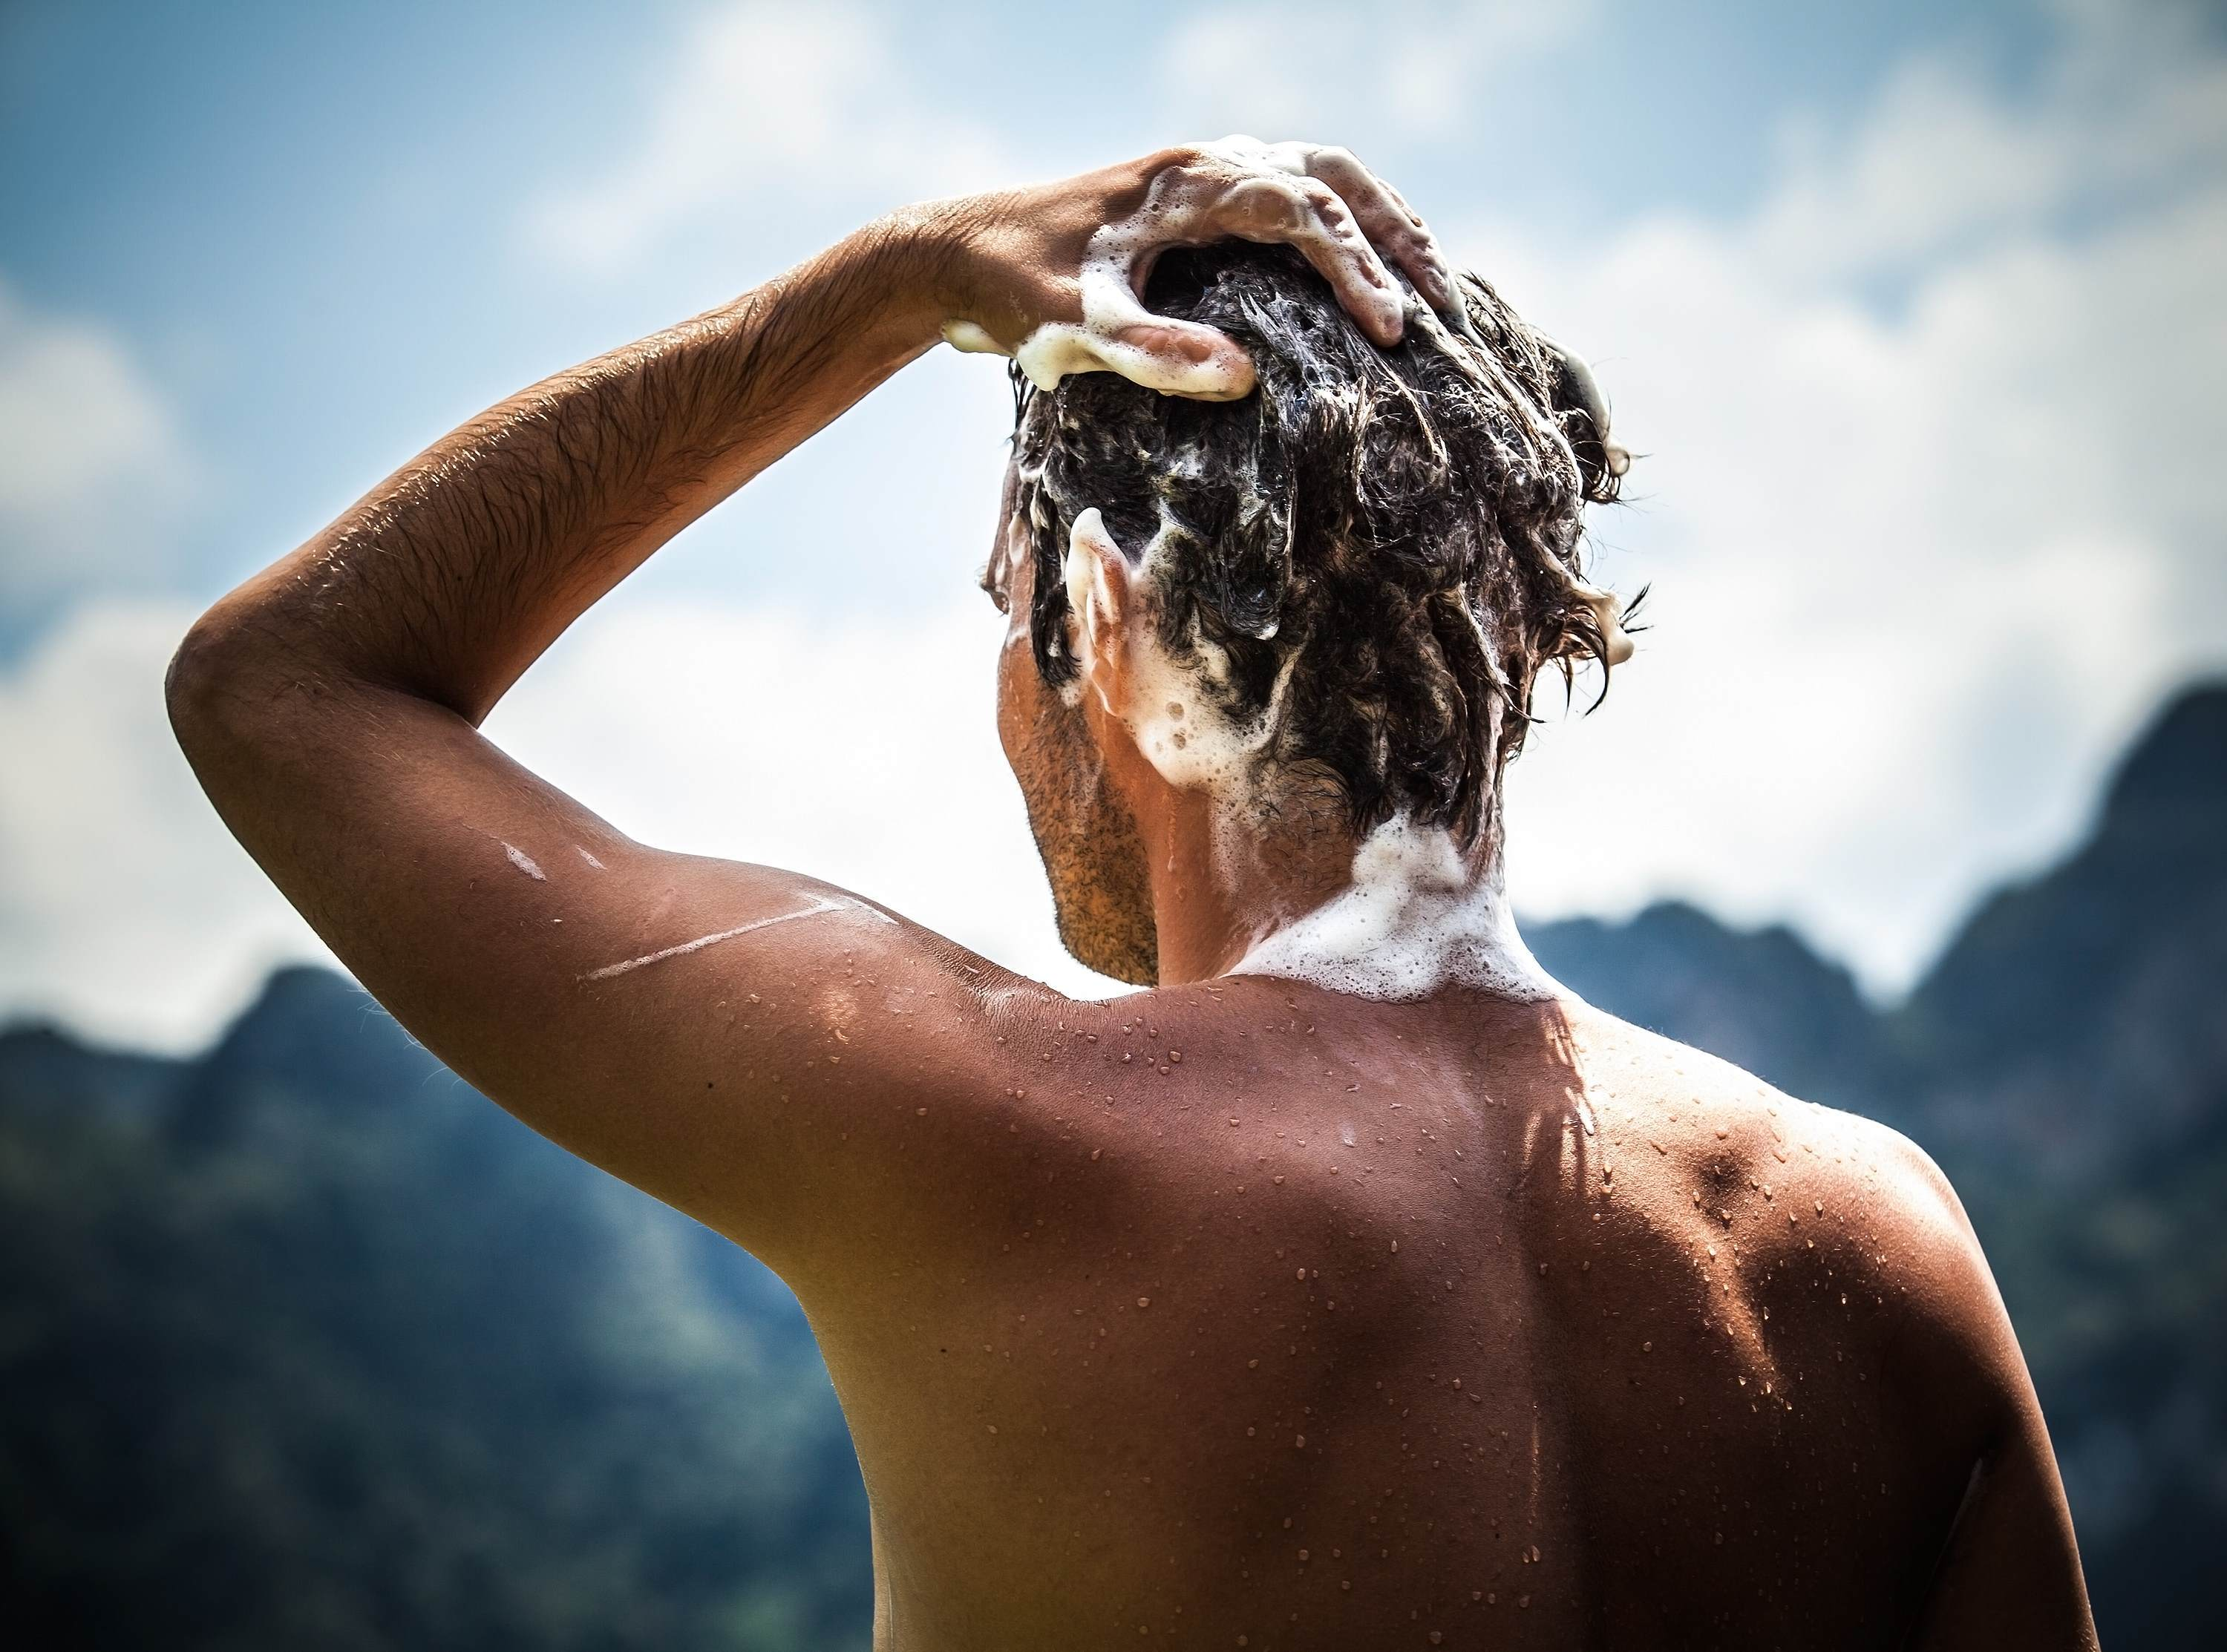 Man lathering hair with shampoo that contains Croda's diverse portfolio of ingredients for a range of hair applications ranging from scalp care, conditioning, colouring, damage and styling to give benefits such as softening, thermal protection, frizz control, colour retention and moisturisation.